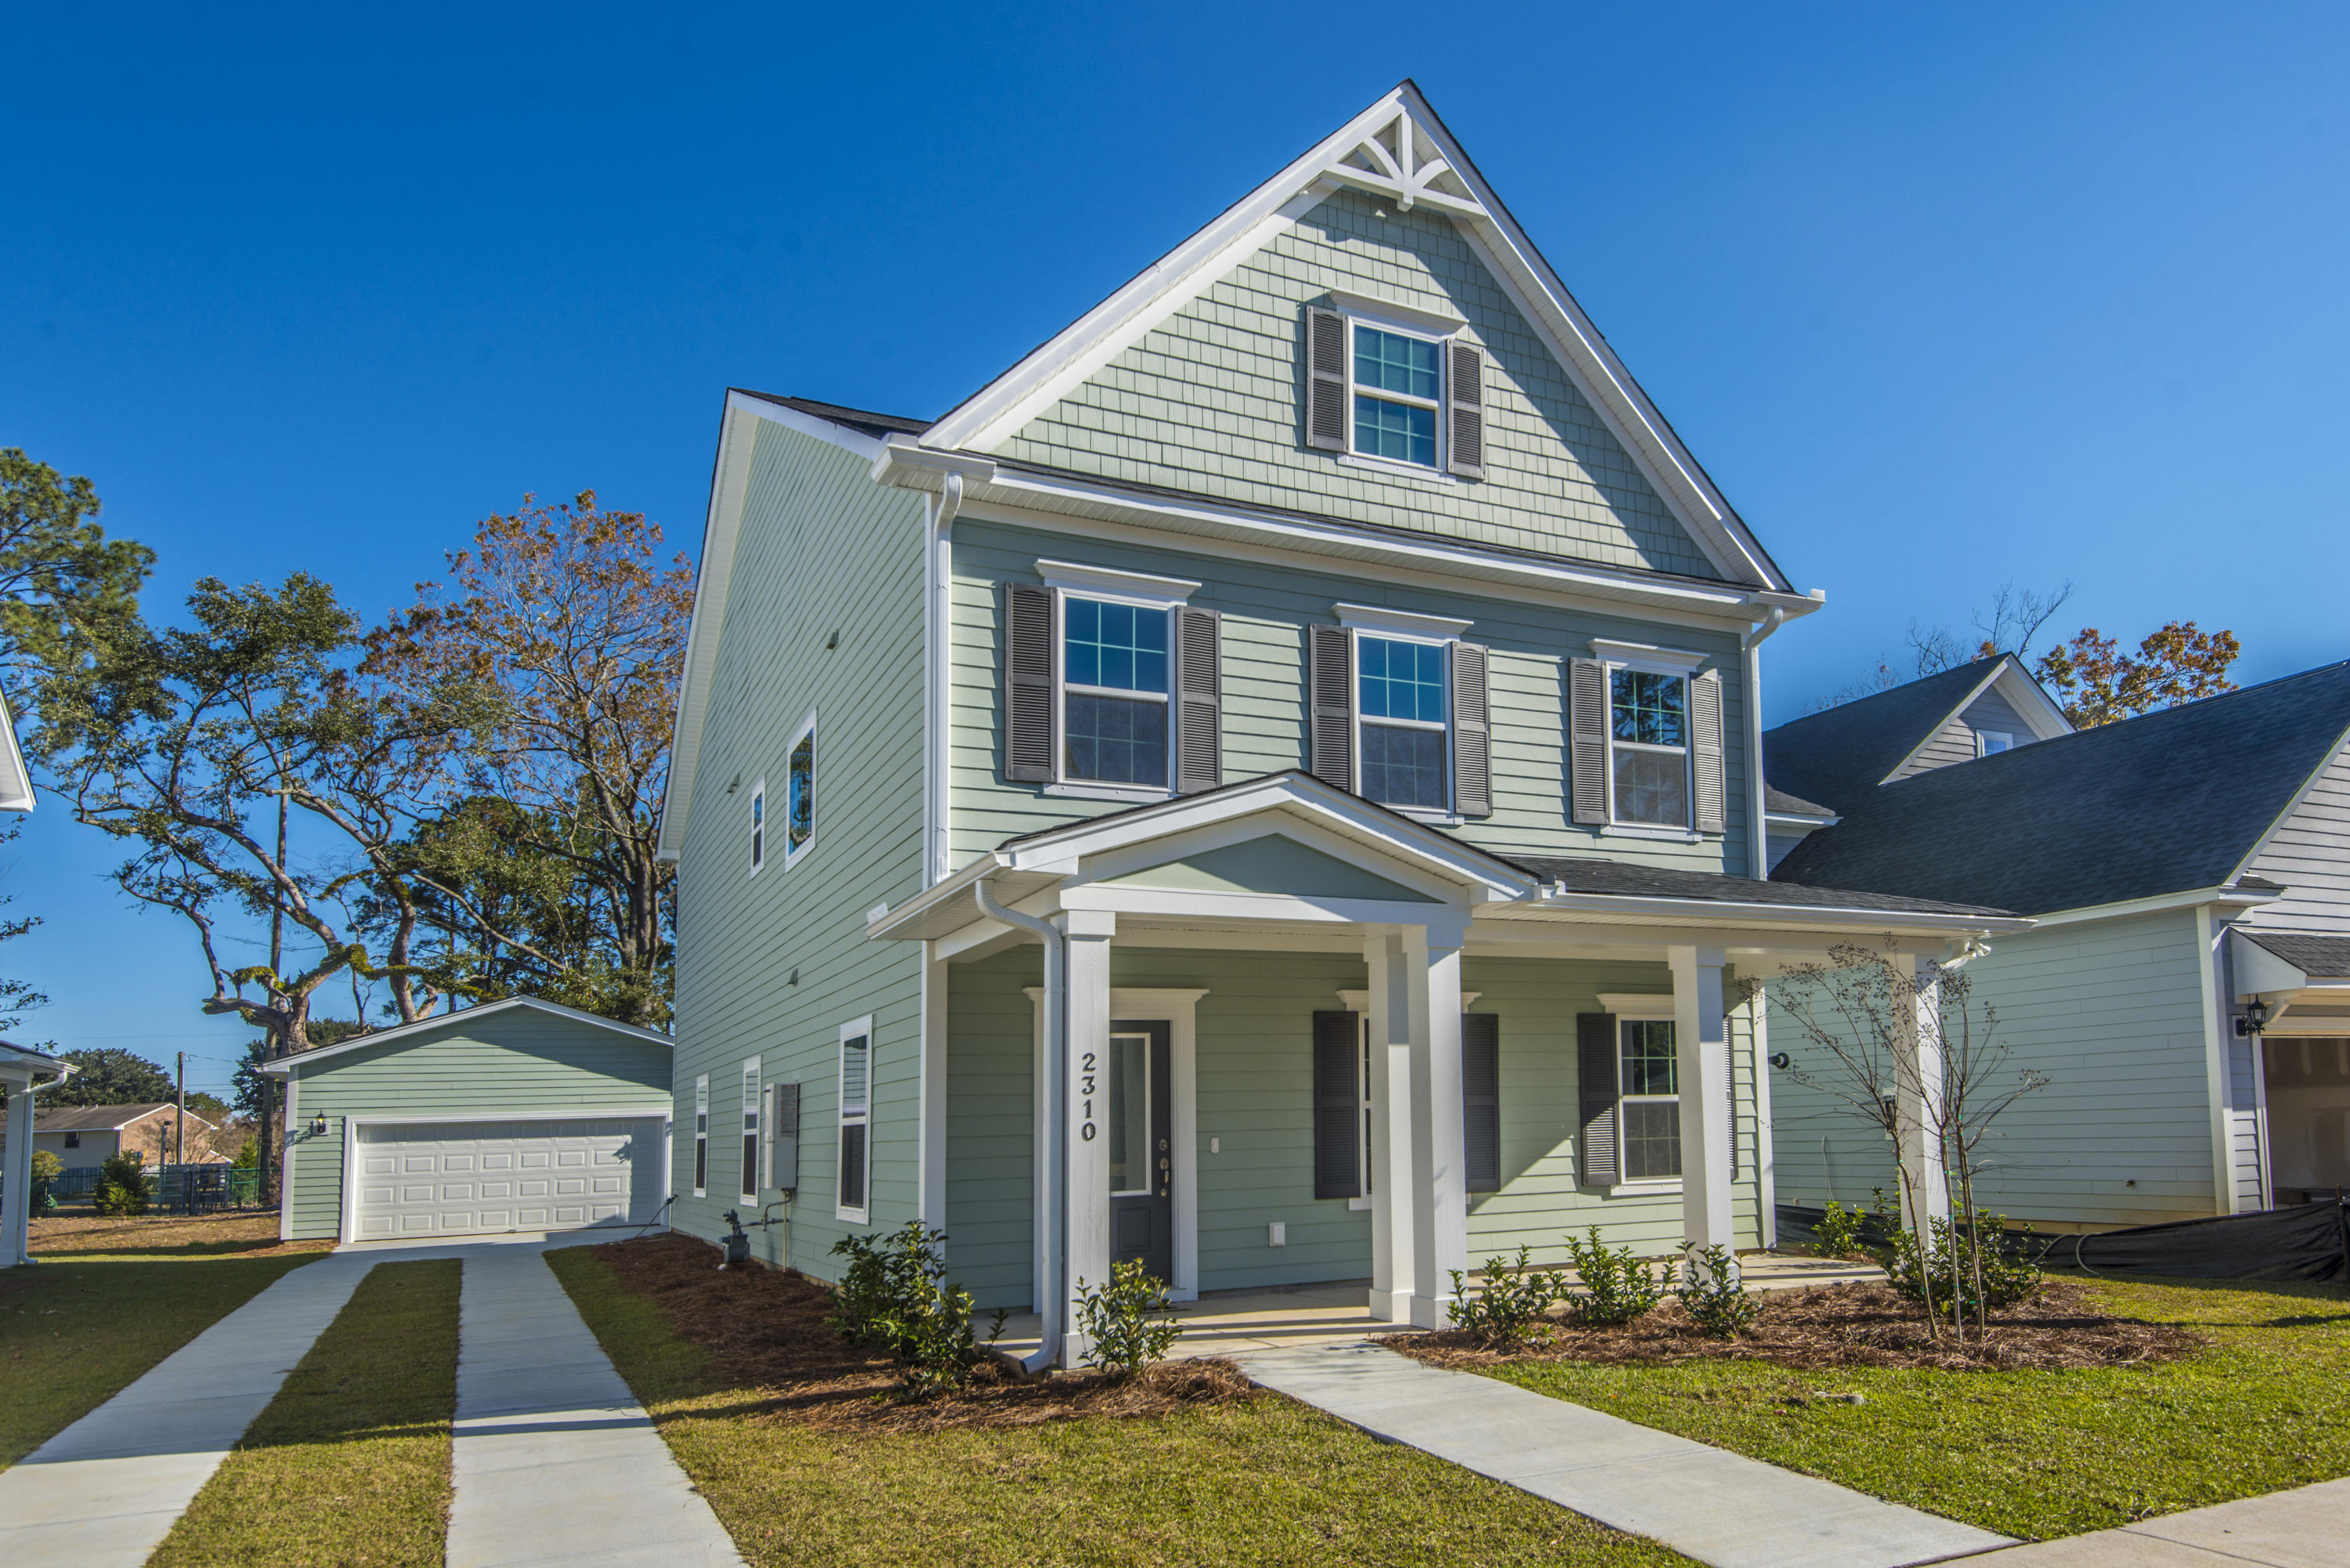 Church Creek Landing Homes For Sale - 2310 Town Woods, Charleston, SC - 9